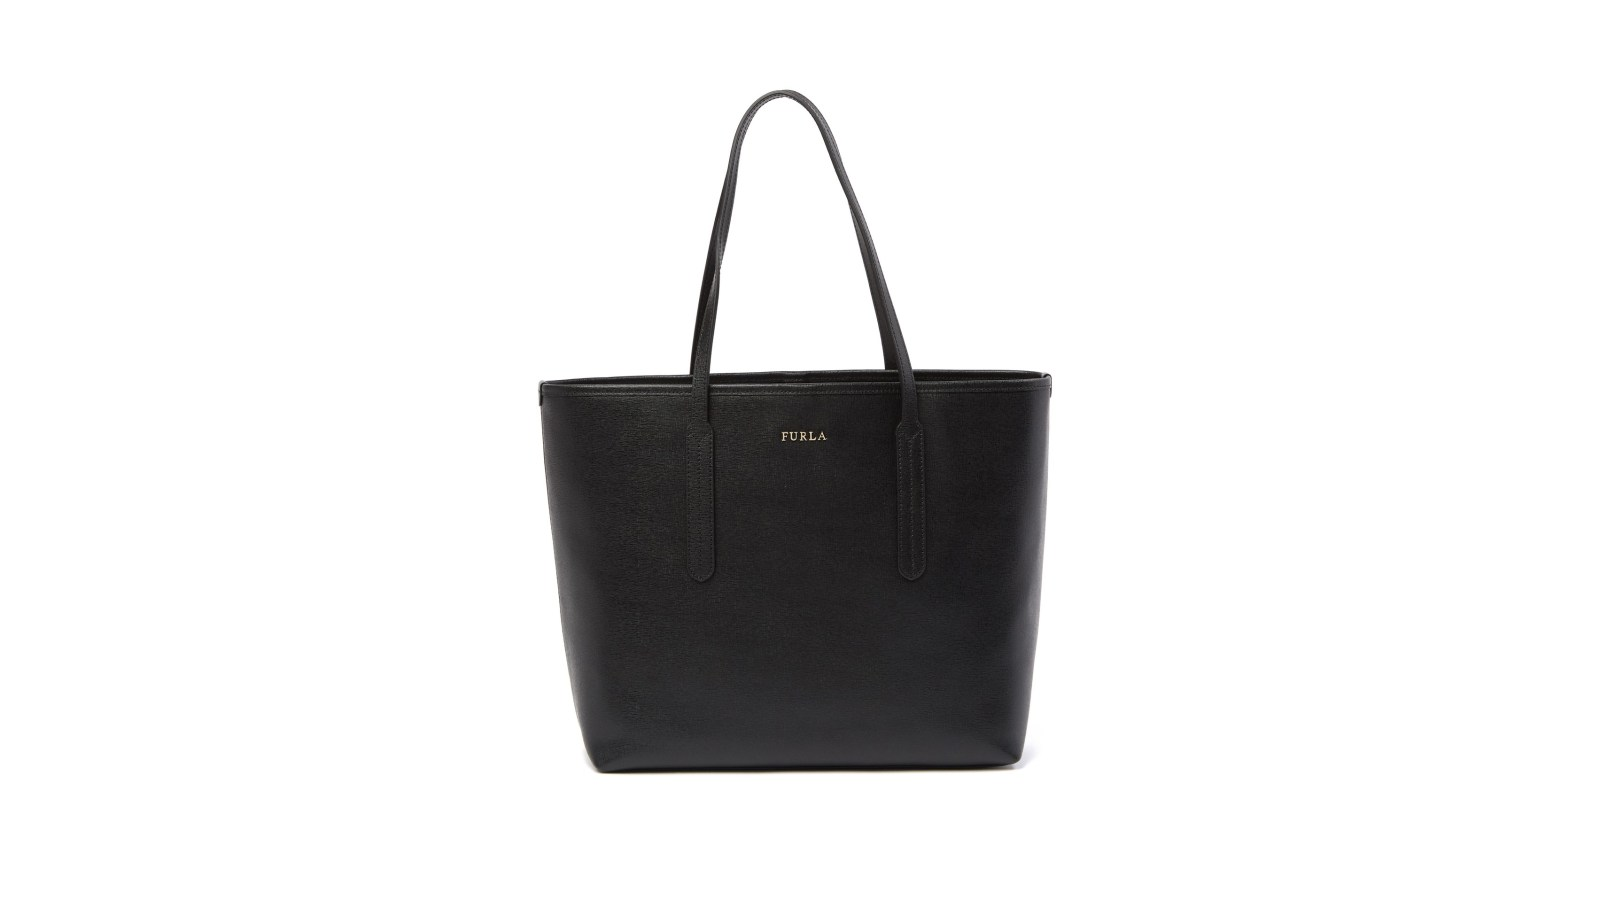 0d2725daa This Furla Tote Bag Is Over 50% Off and We Can't Stop Freaking Out